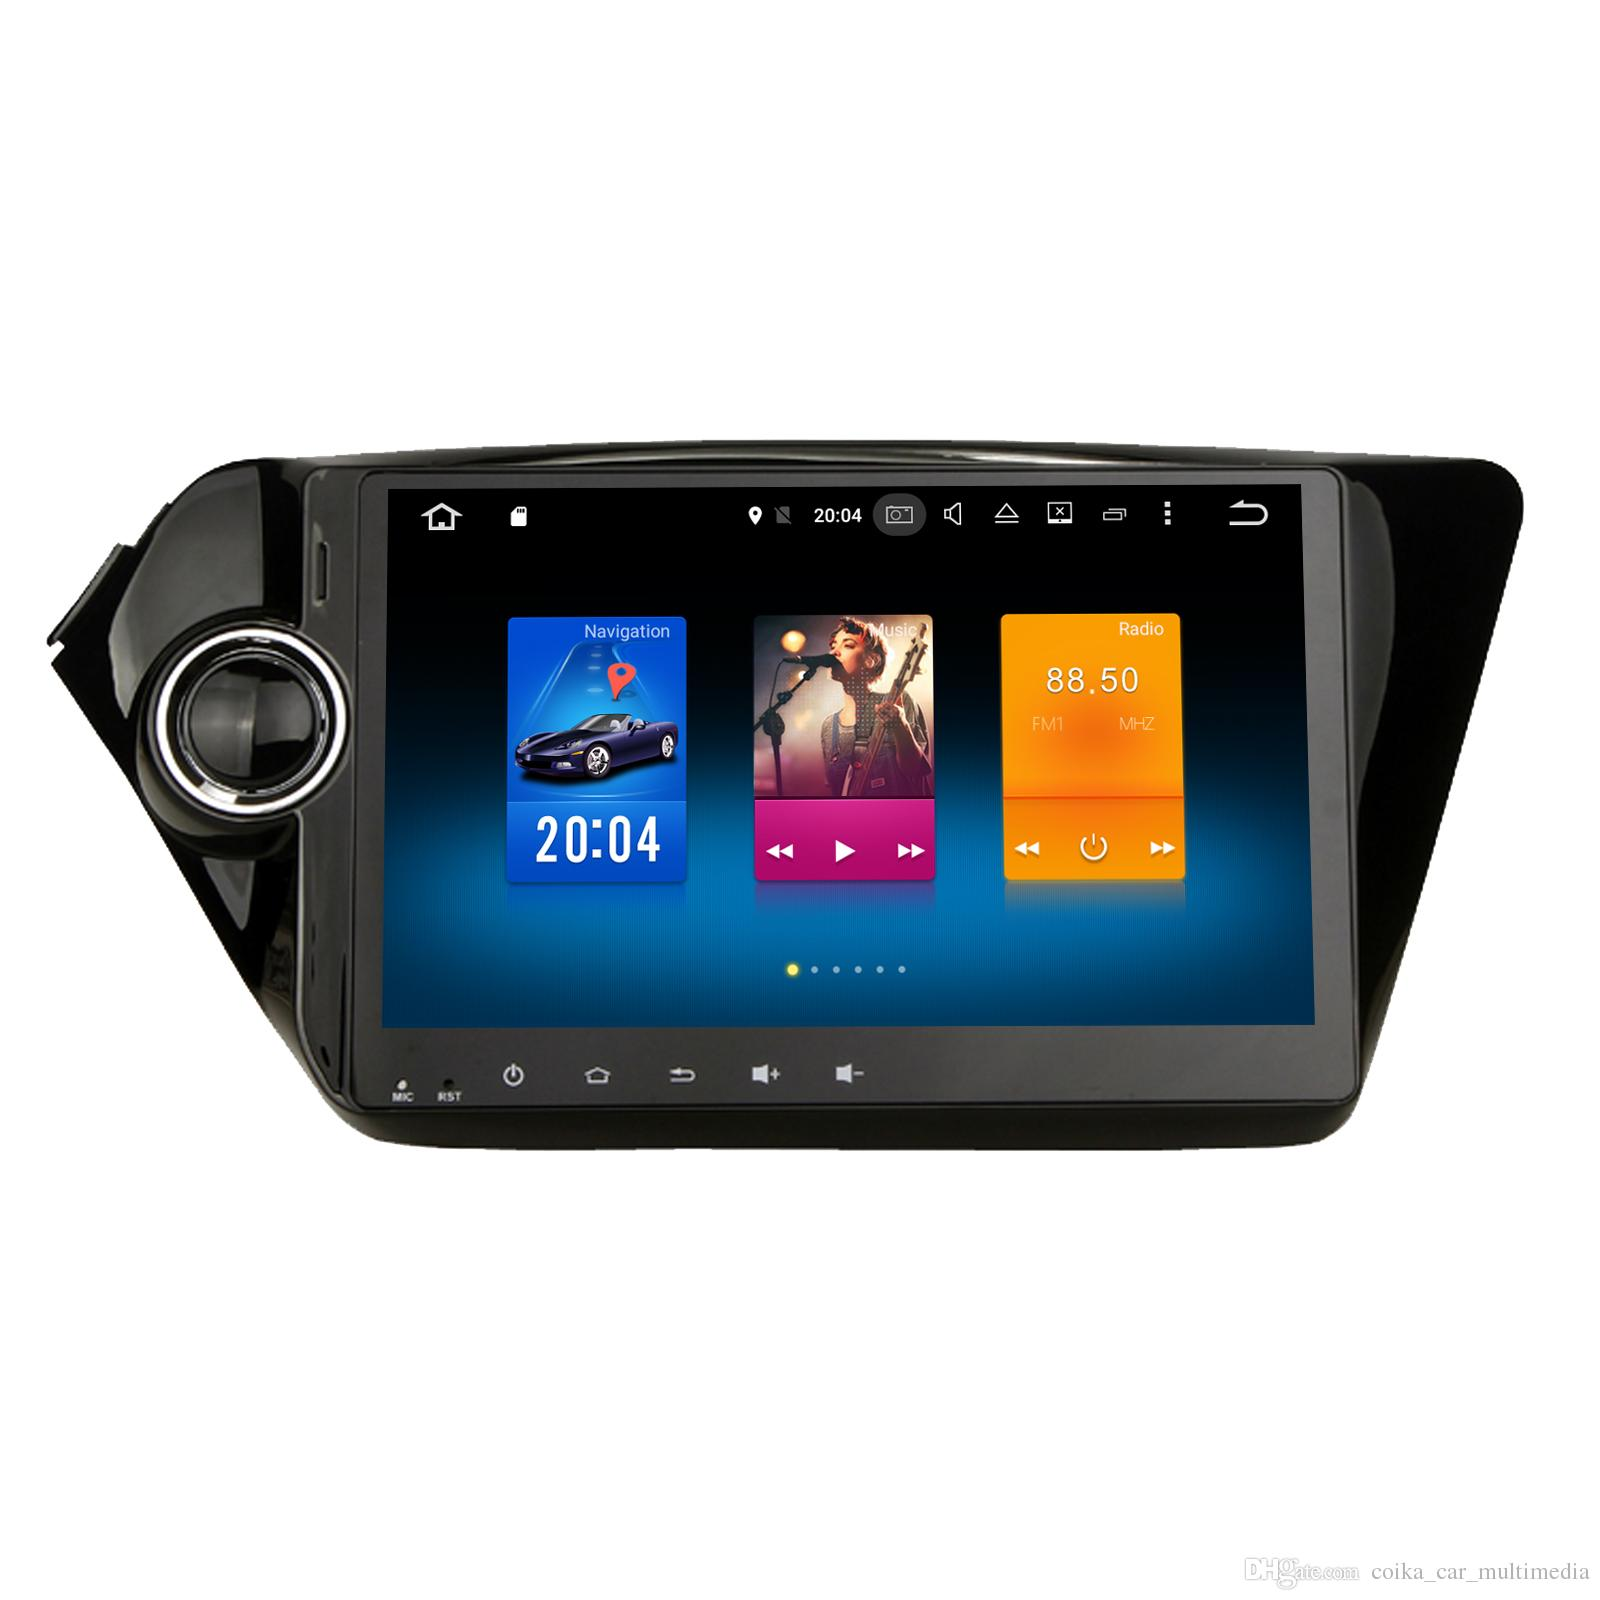 9 octa core android 6.0 car dvd player for kia rio k2 gps tape